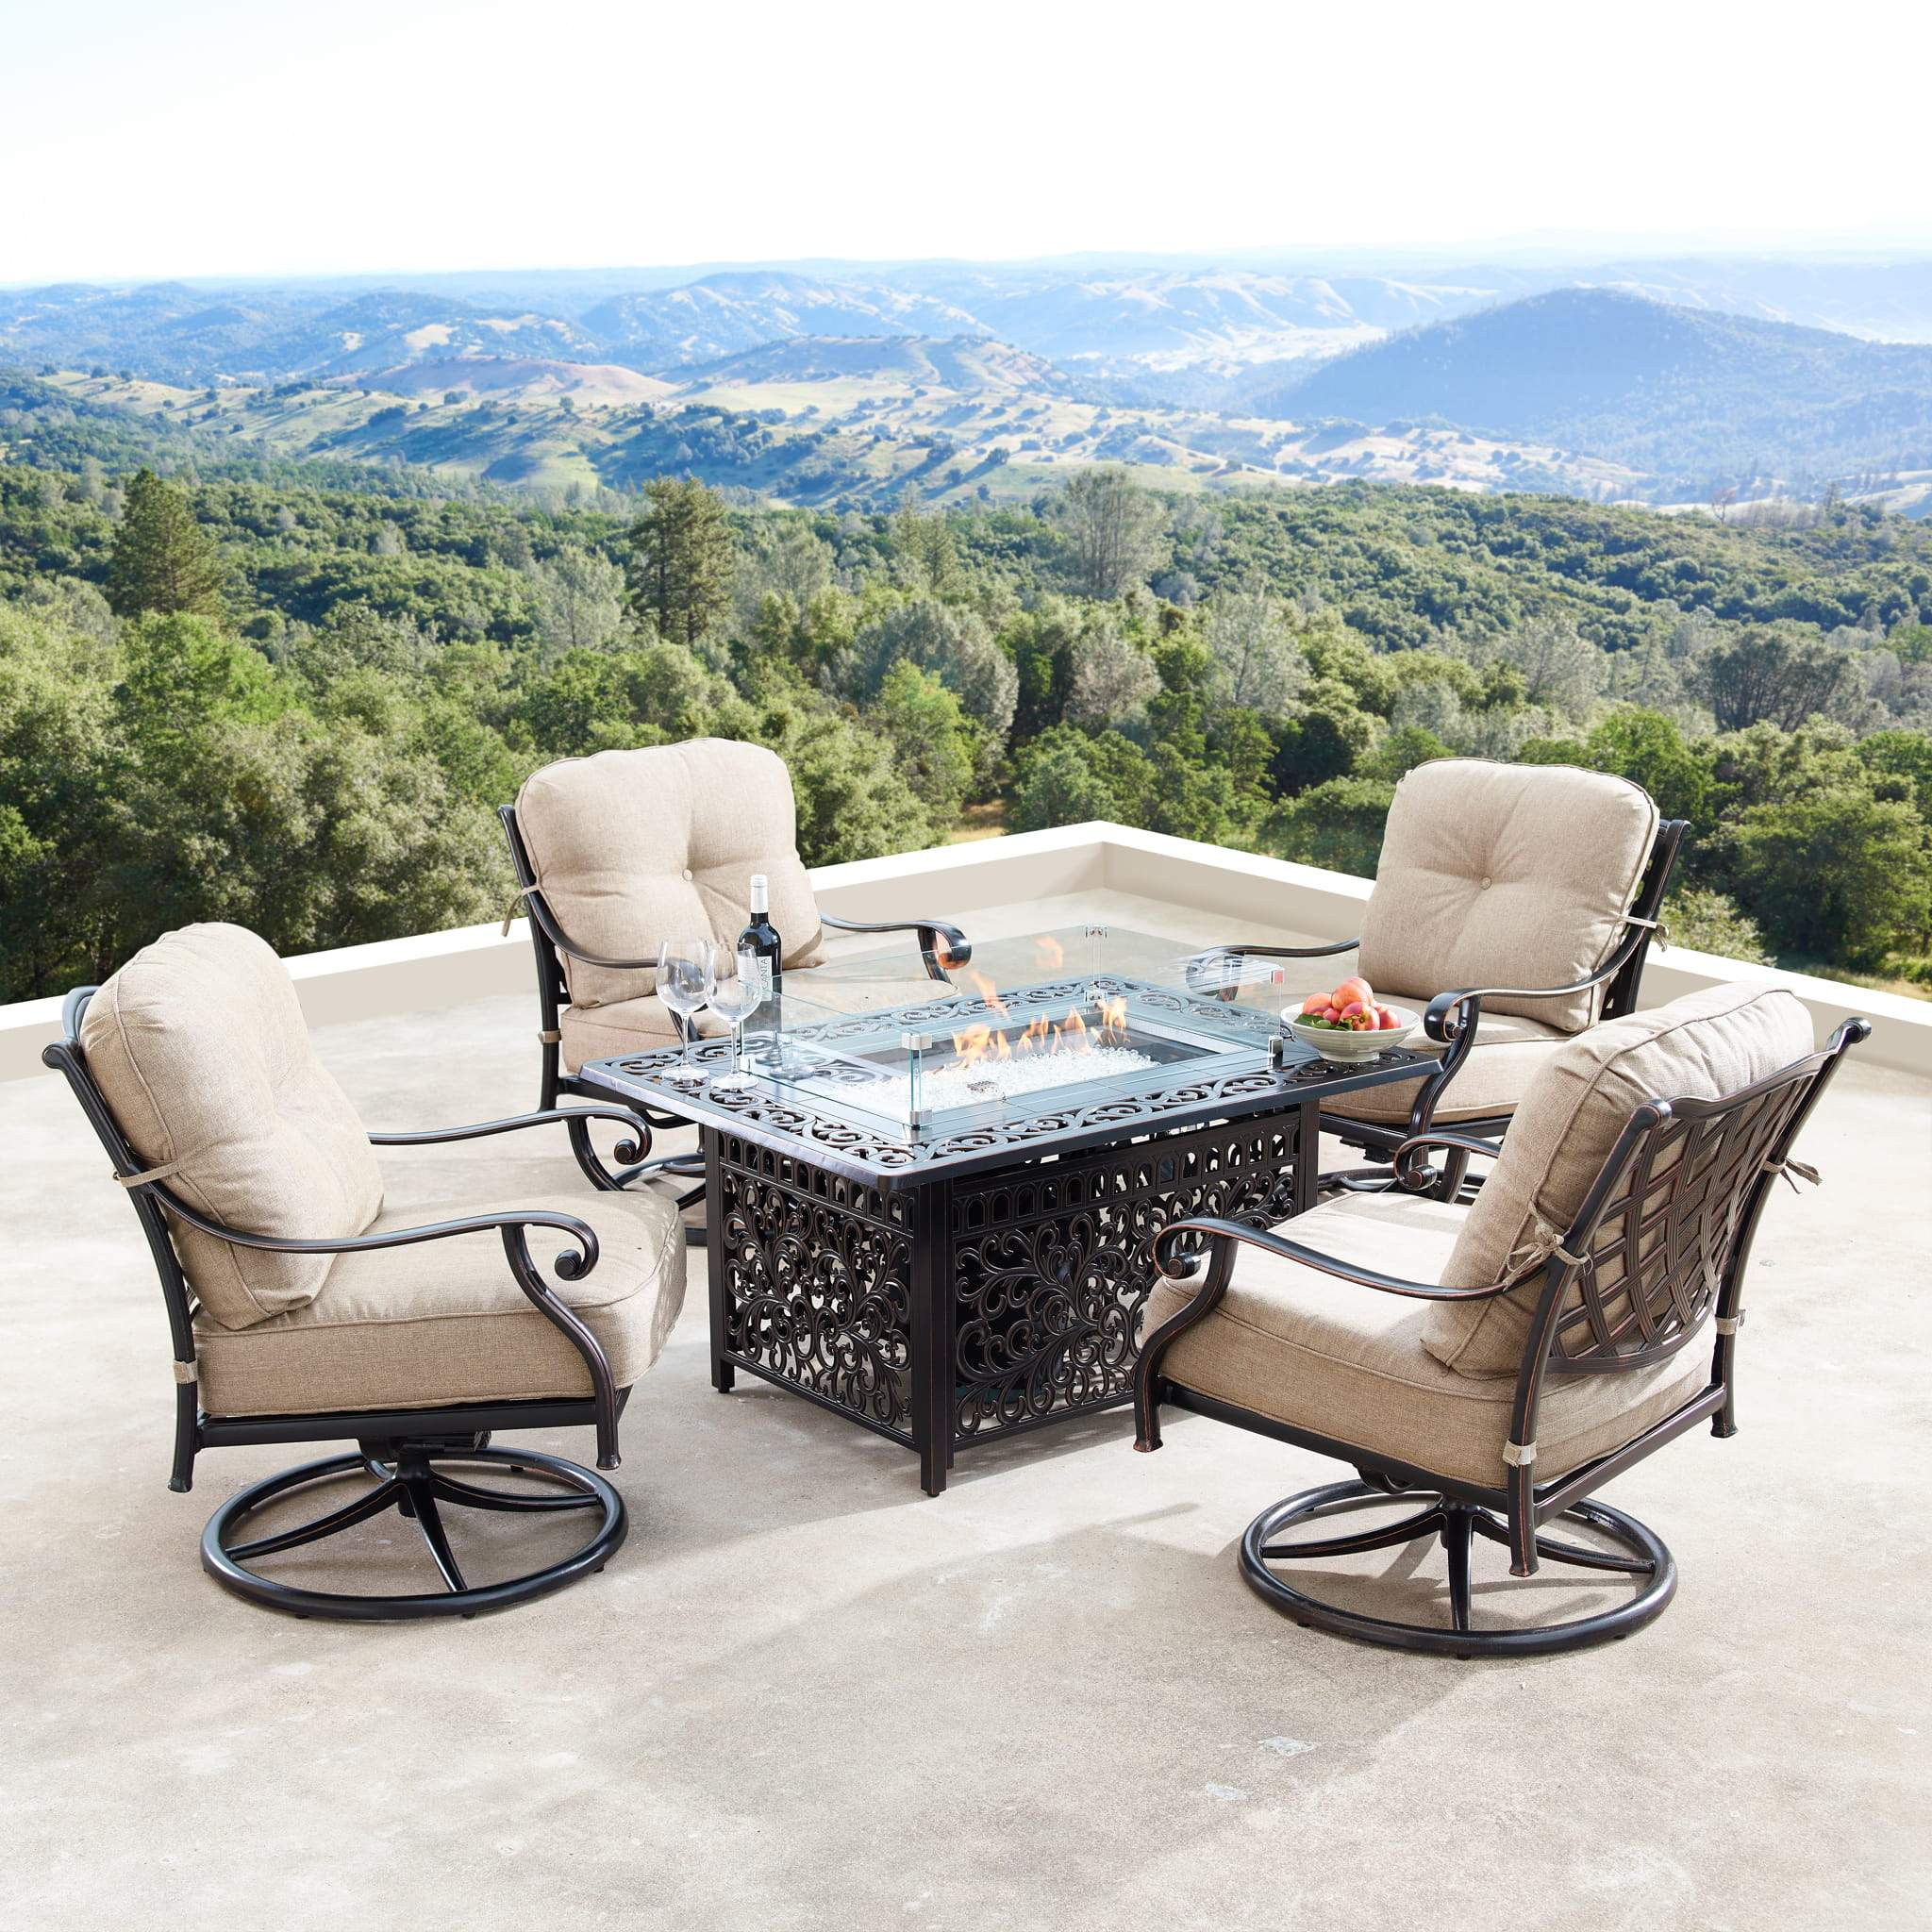 Oakland Living Finland-Cabos 5-Piece Outdoor Fire Table Set - FINLAND-CABOS-5PC-AC Outdoor Fire Table Sets Oakland Living